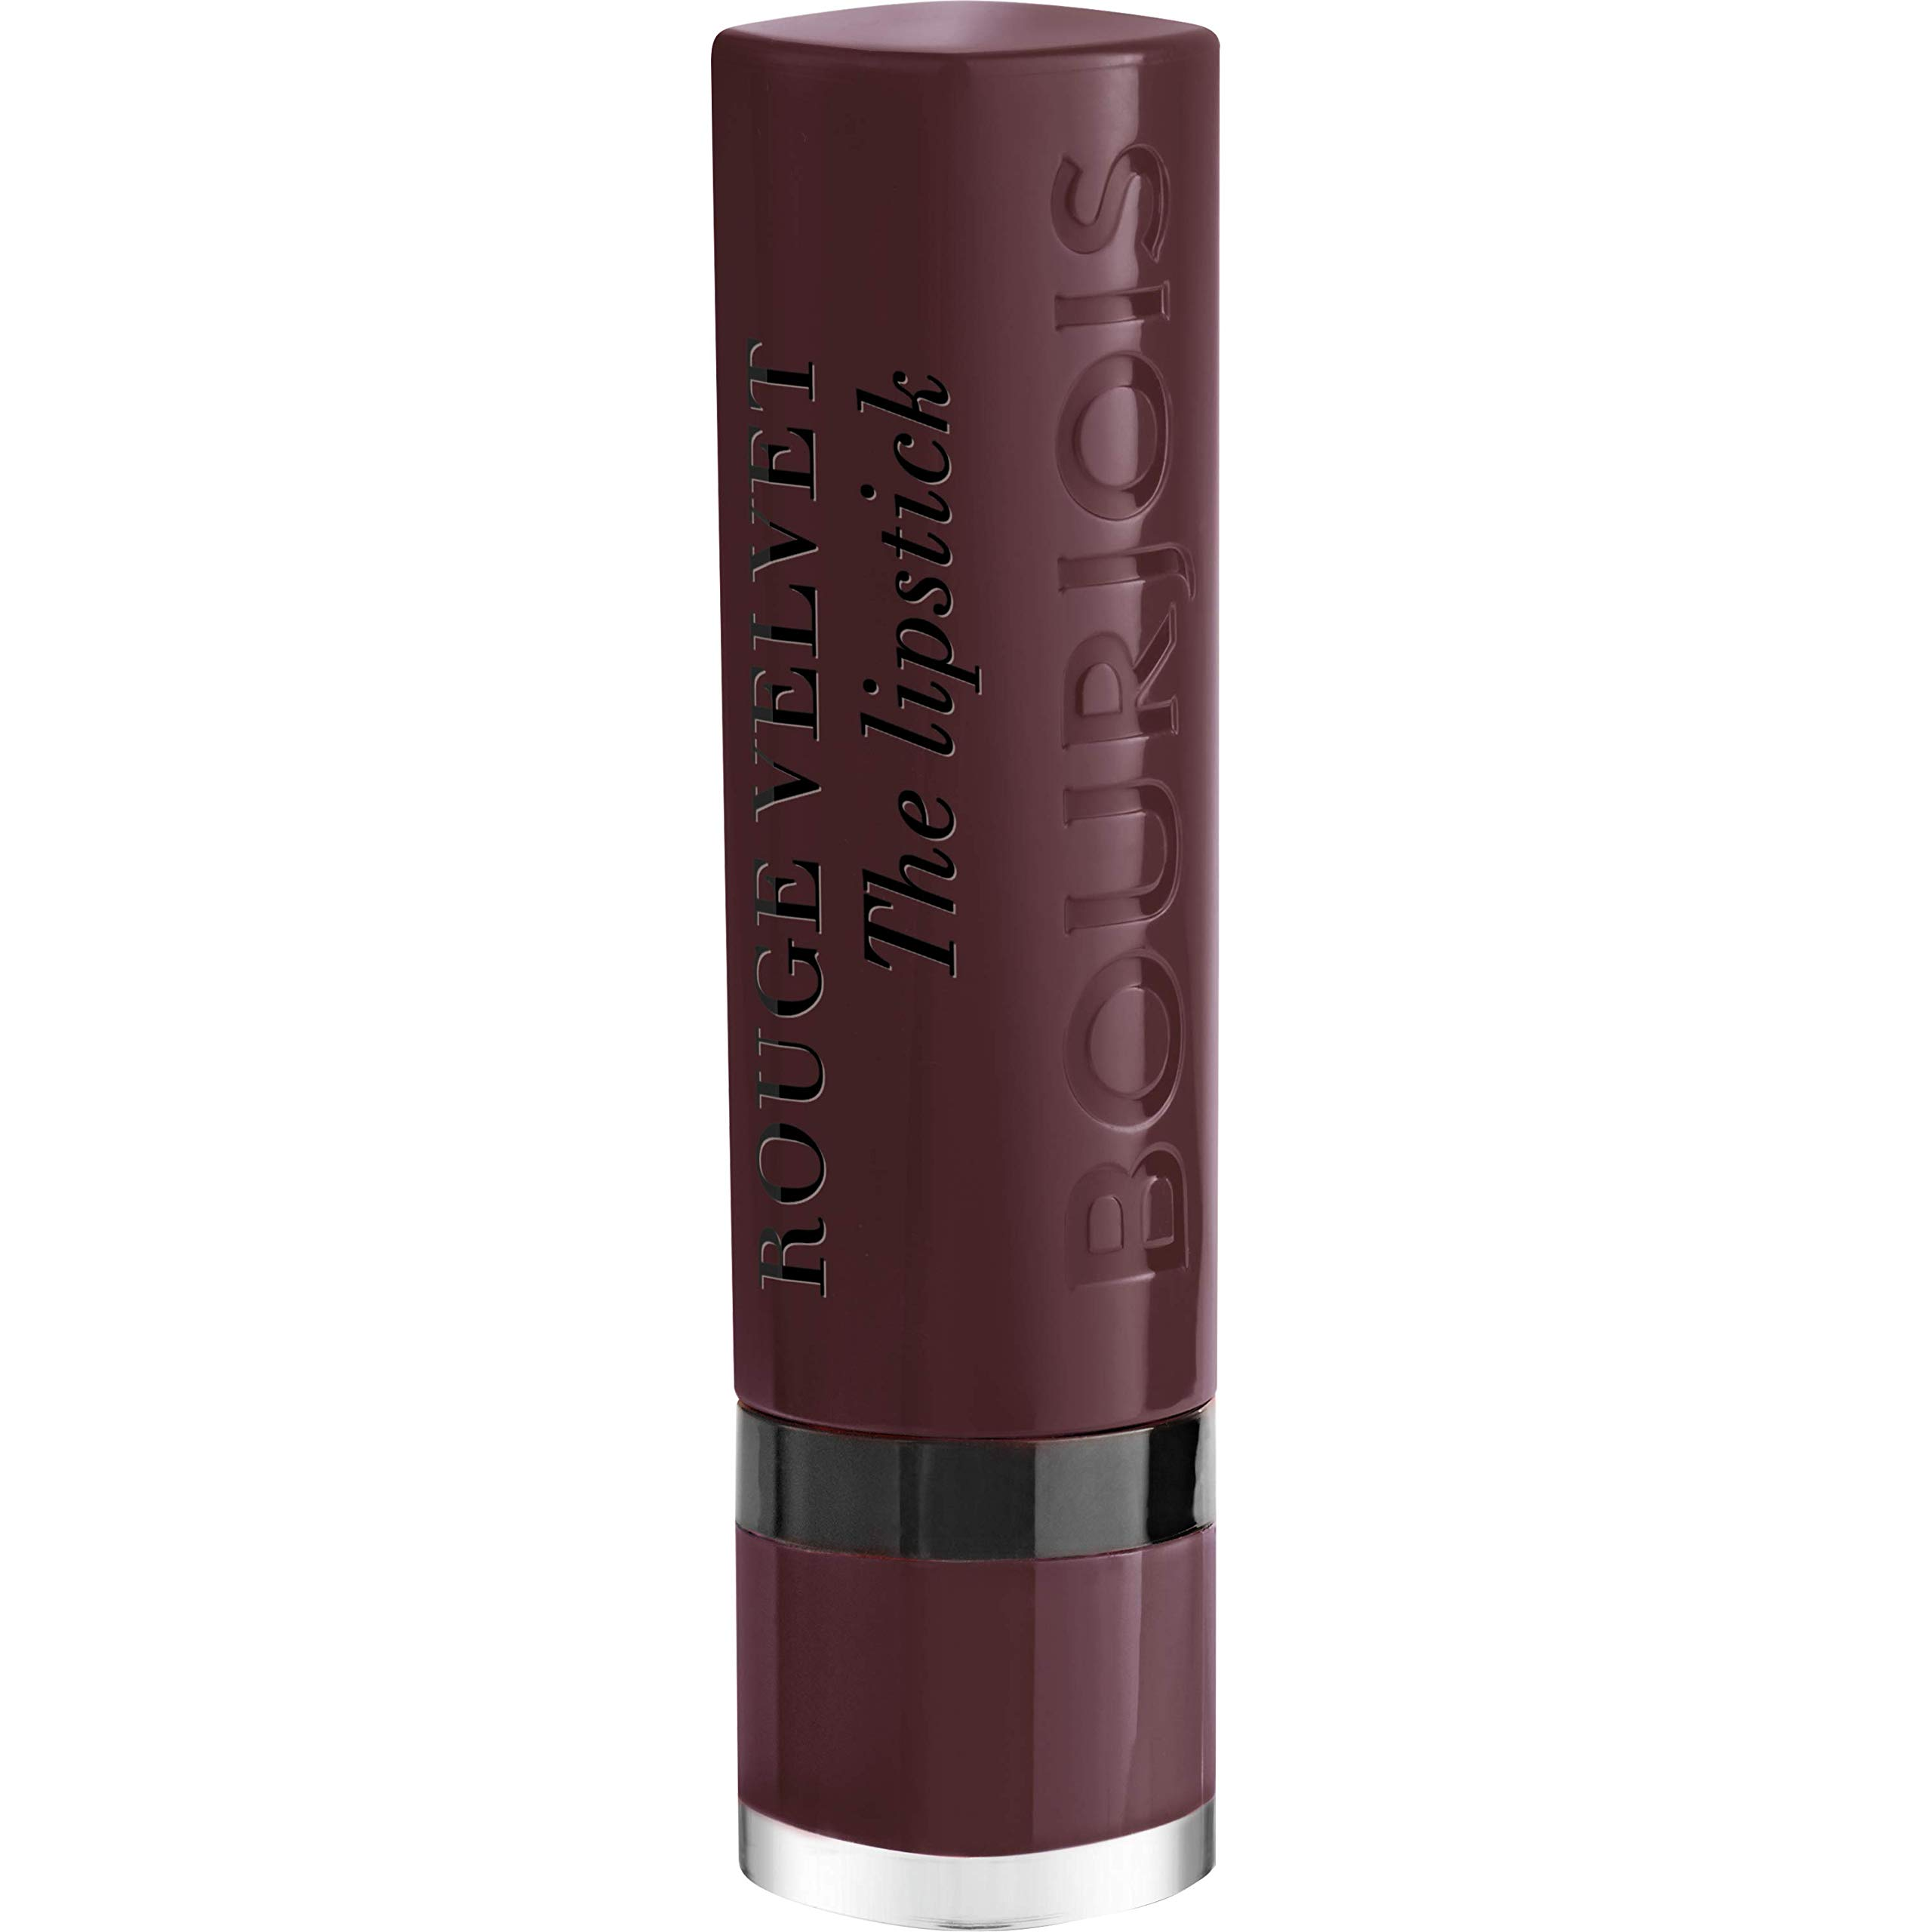 Bourjois Velvet The Lipstick Barra De Labios Tono 026 French Opéra - 23 gr product image